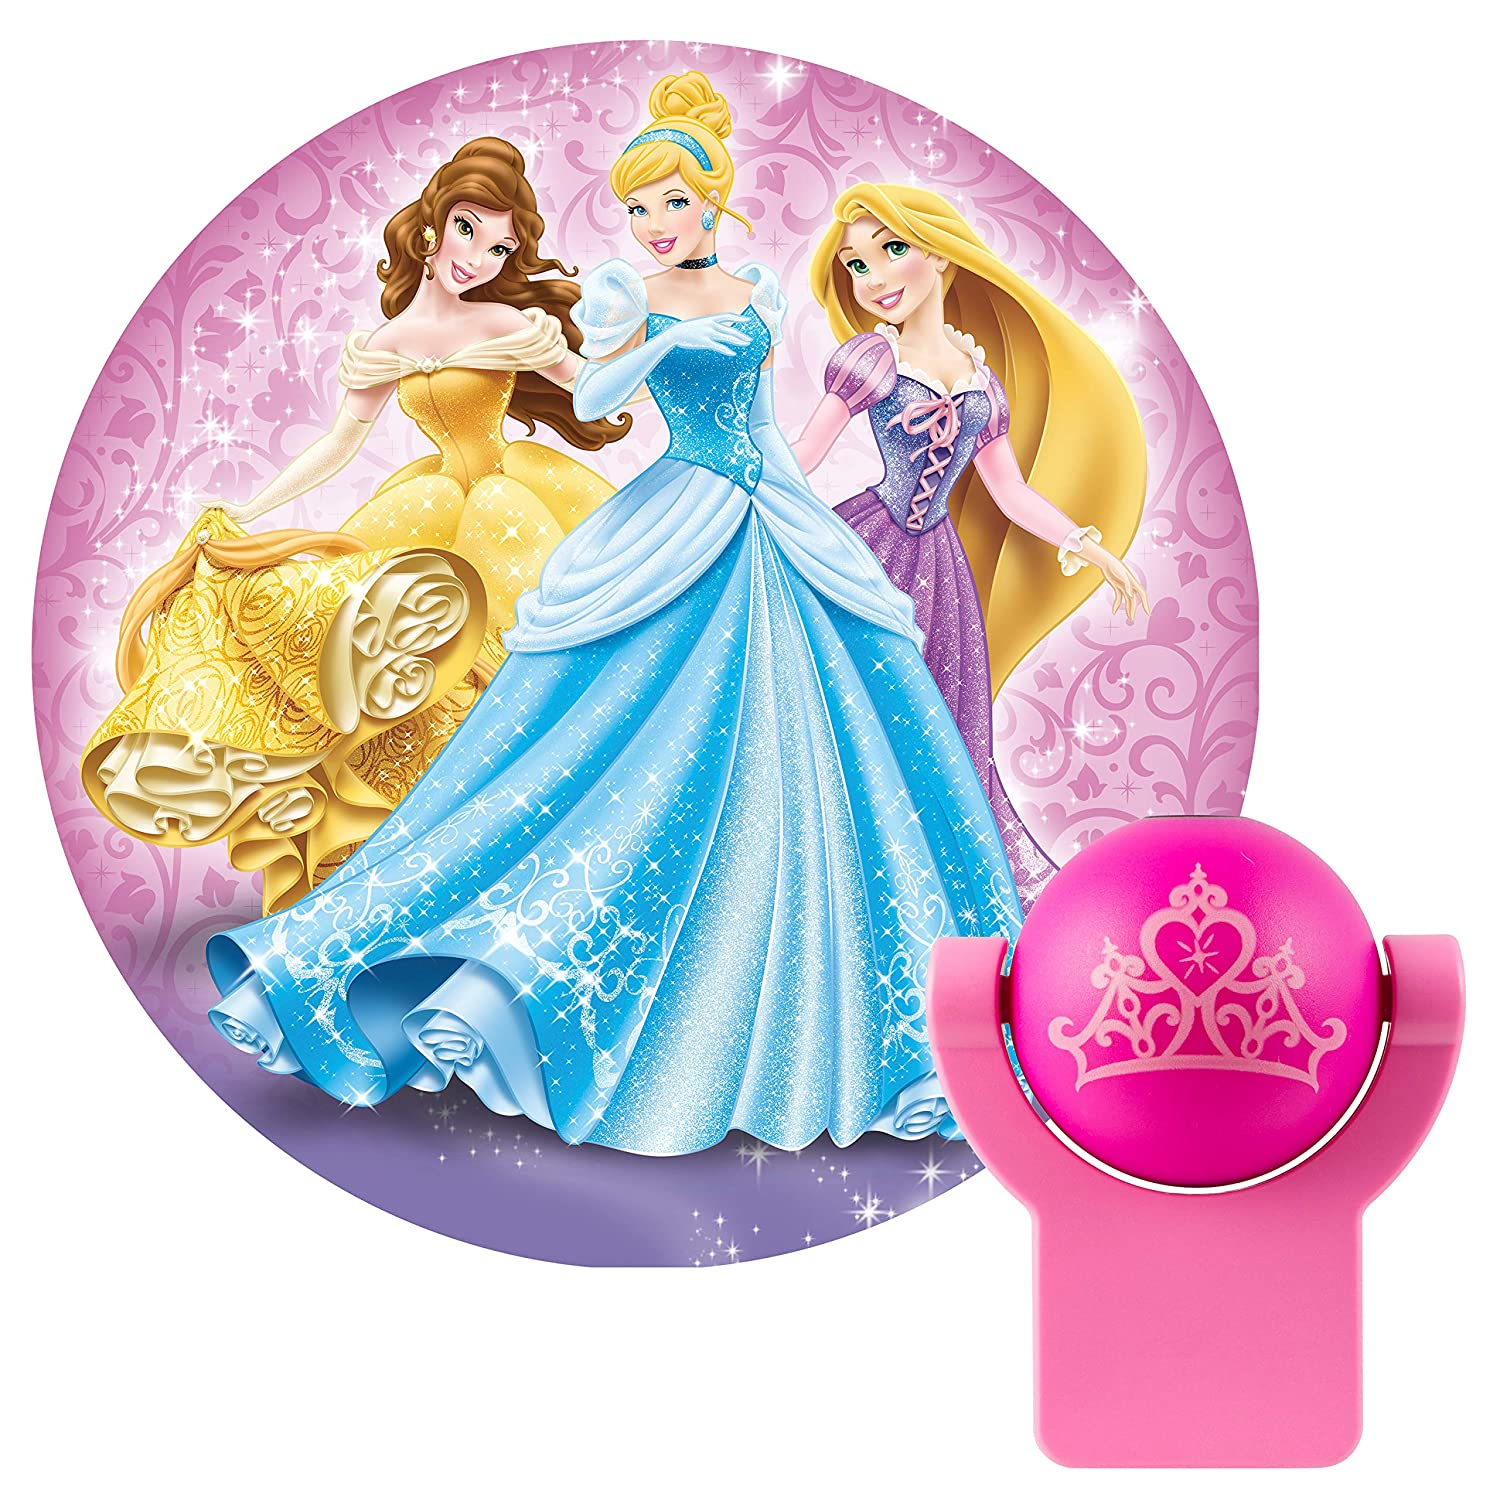 Projectables 13230 Princess LED Plug-In Night Light, Pink, Light Sensing, Auto On/Off, Projects Disney Characters Aurora, Rapunzel, and Belle Image on Ceiling, Wall, or Floor